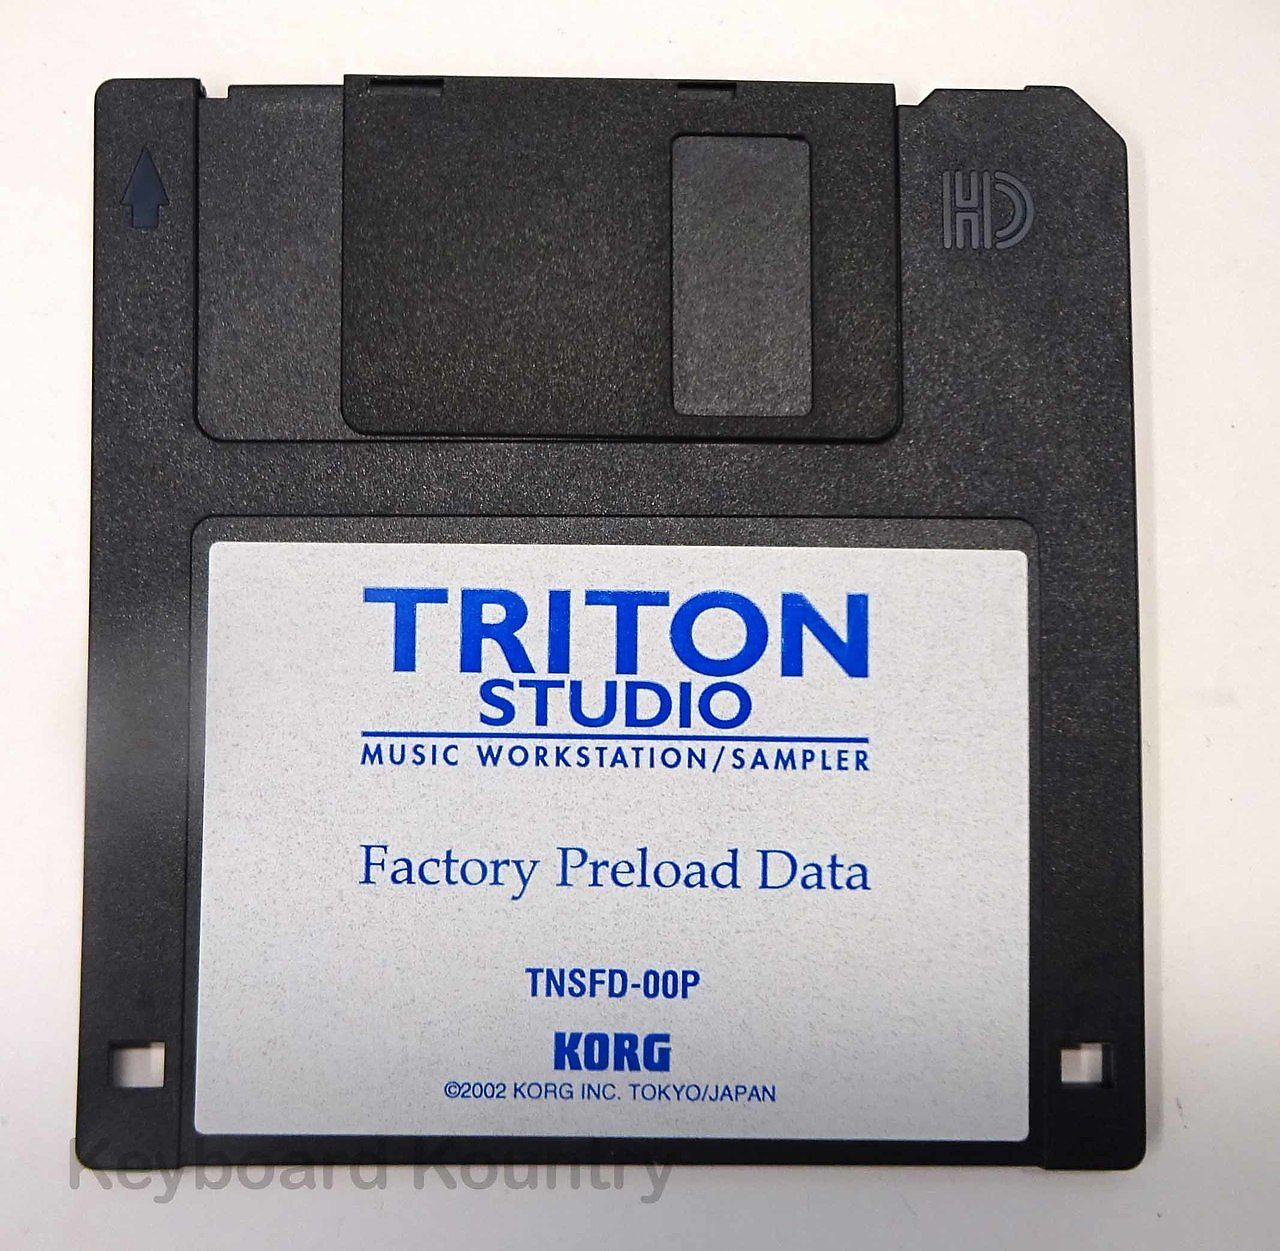 Korg Triton Studio Factory Preload Data Disk